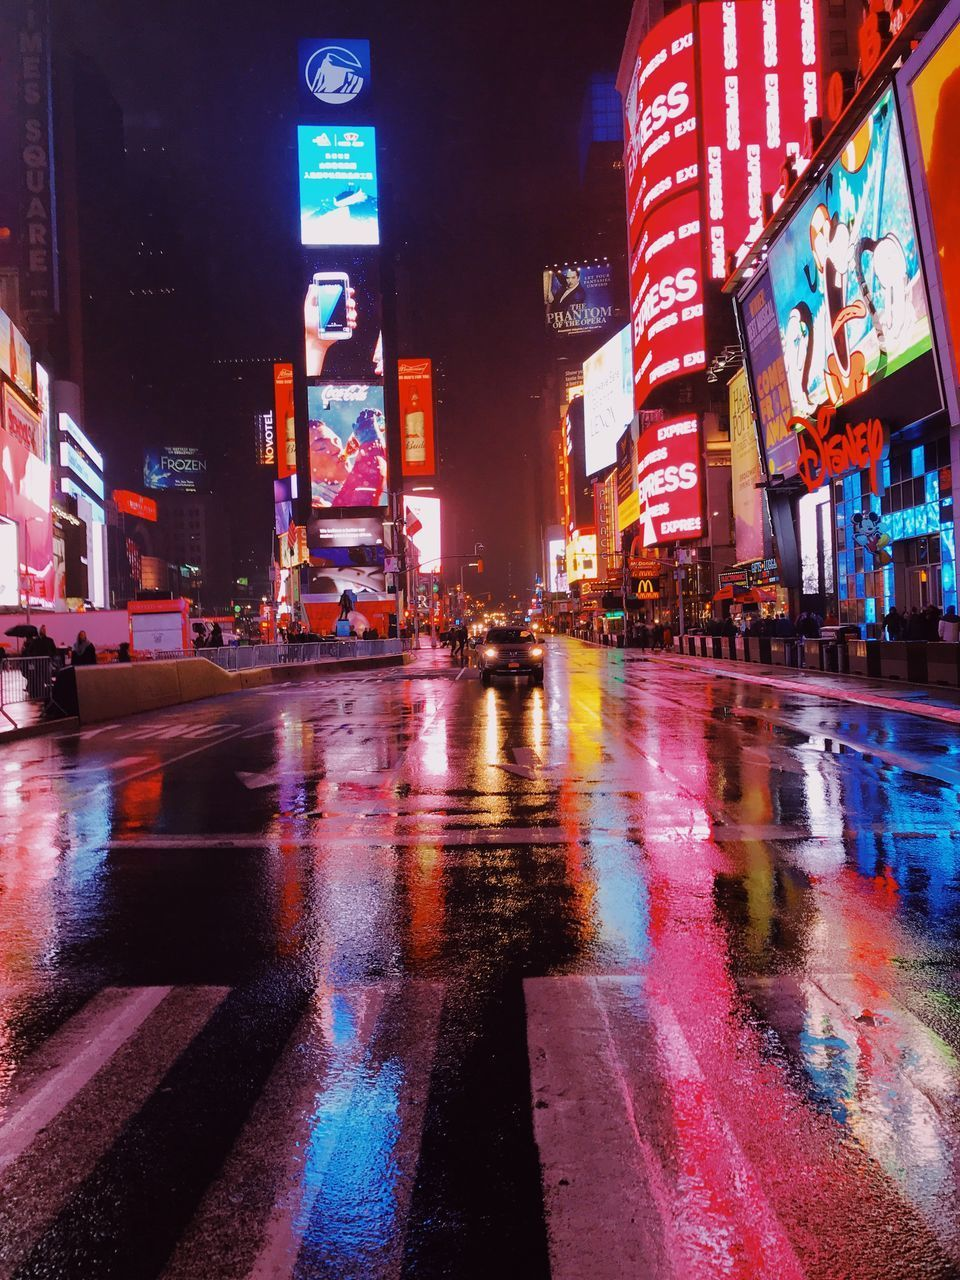 illuminated, rain, night, wet, street, road, architecture, building exterior, city, outdoors, city life, built structure, travel destinations, multi colored, neon, no people